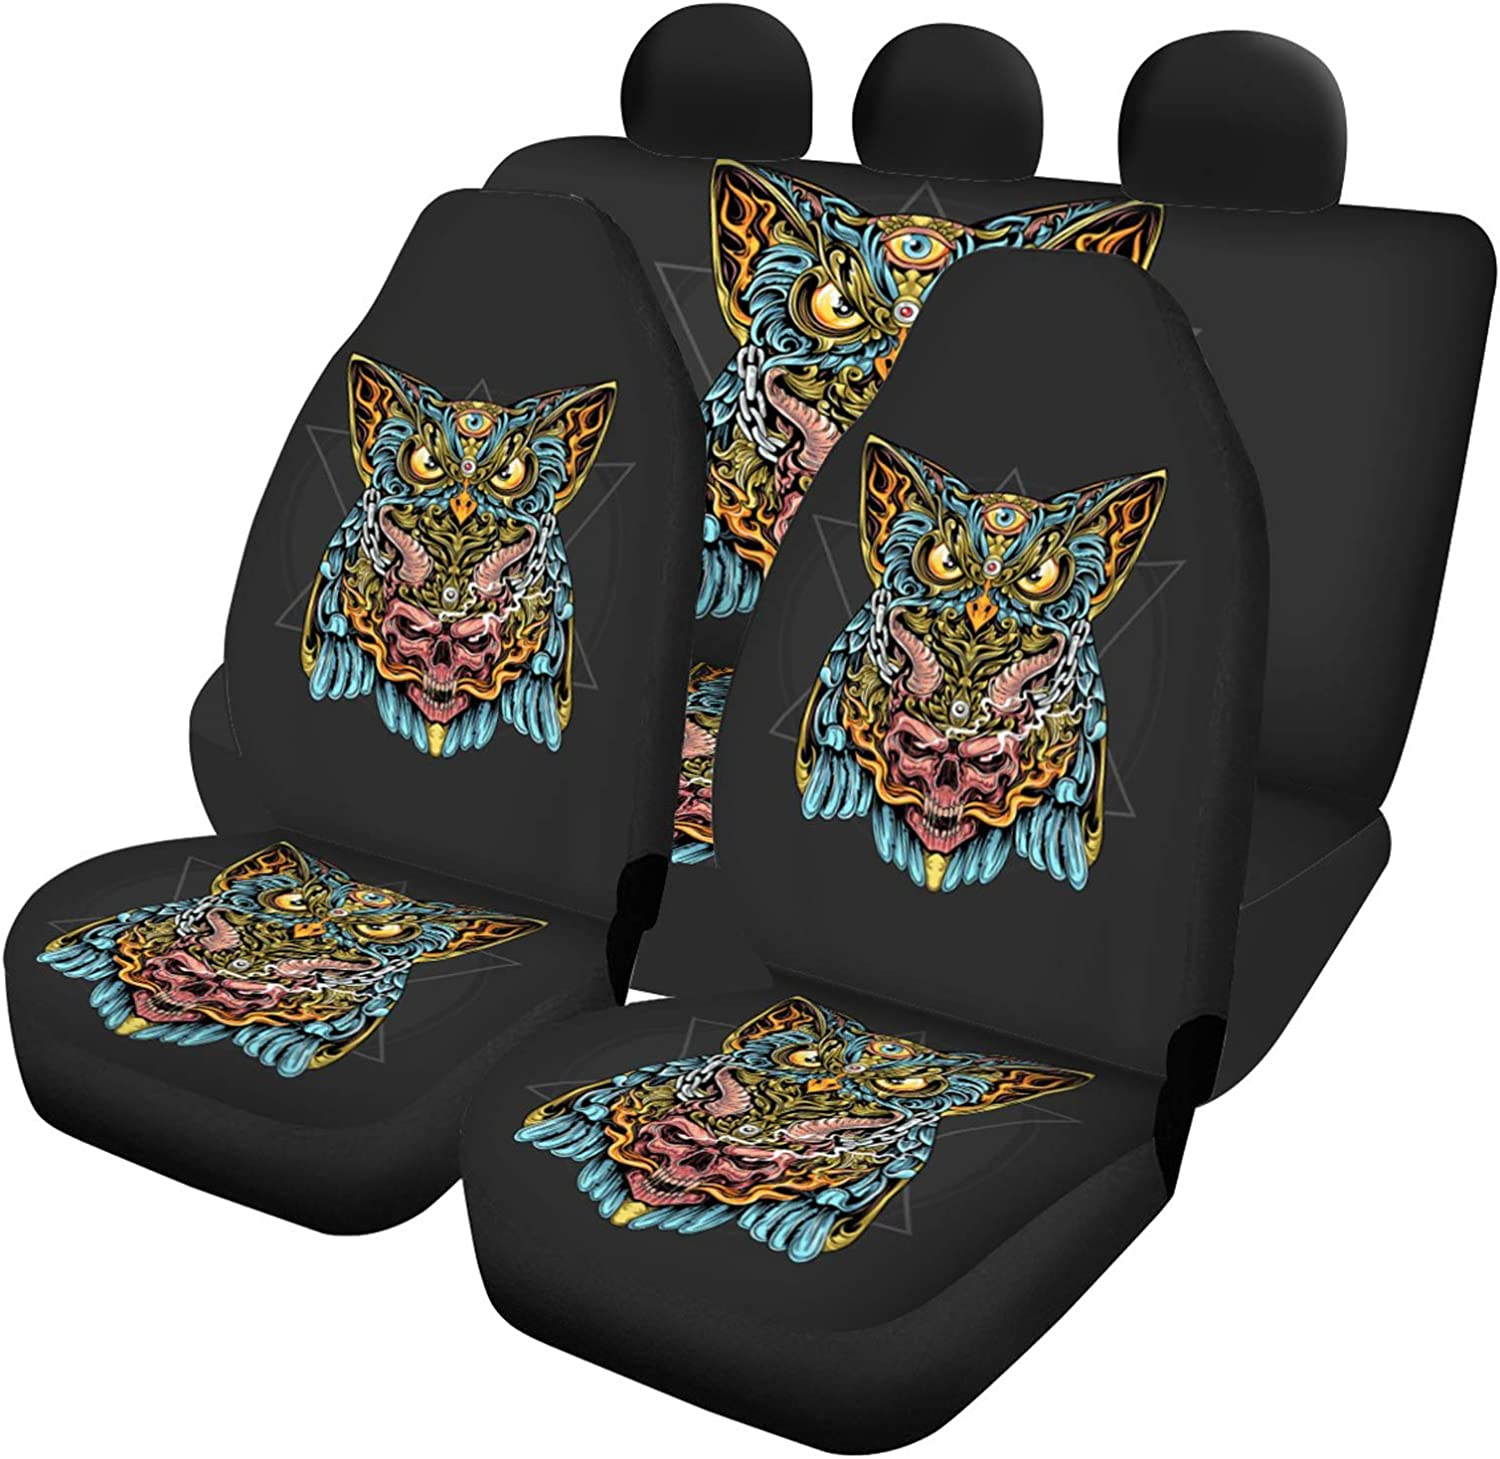 Car Seat Jacksonville Mall Covers 5 Full Set Universal Protector Interior Albuquerque Mall